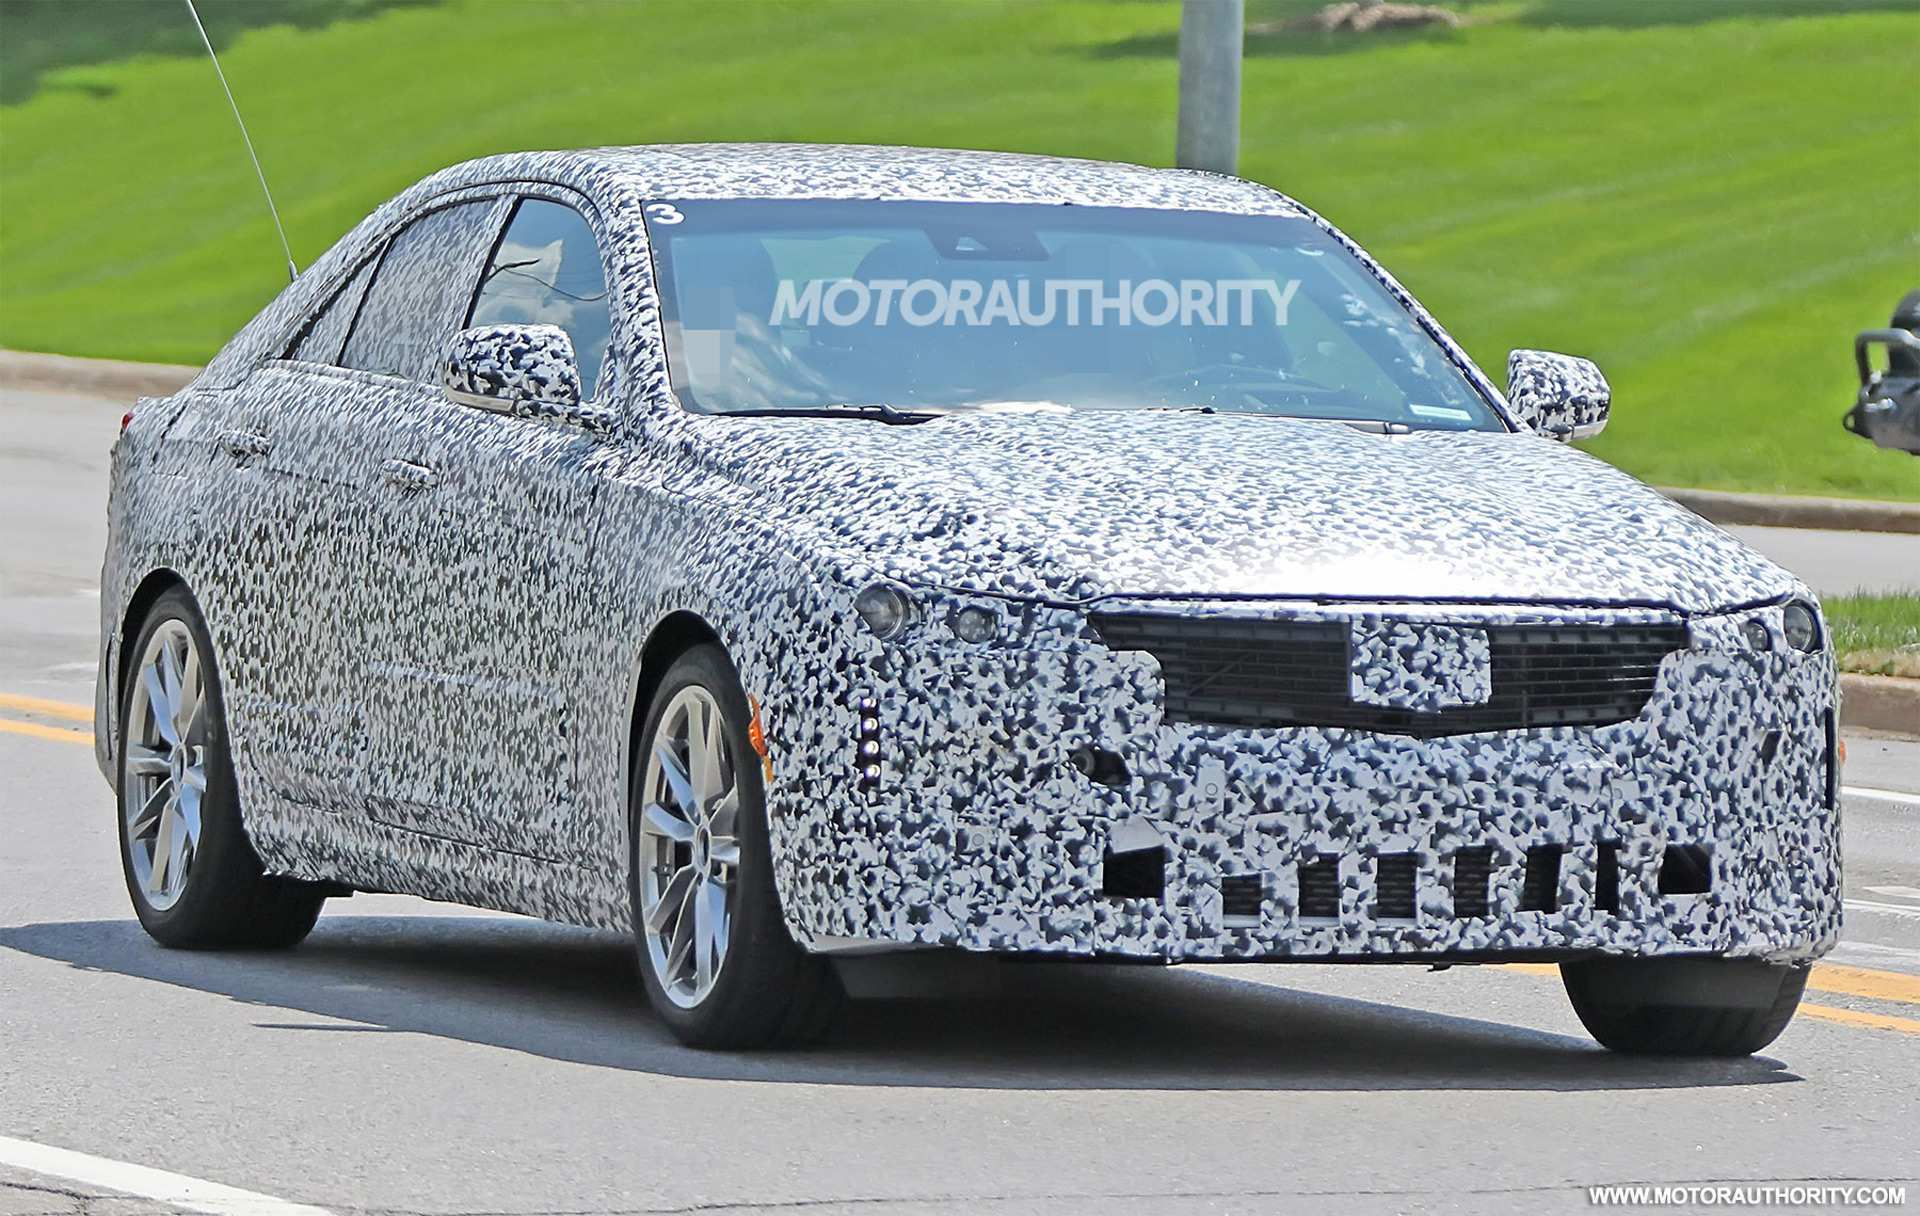 97 All New Cadillac Spy Shots Specs and Review by Cadillac Spy Shots